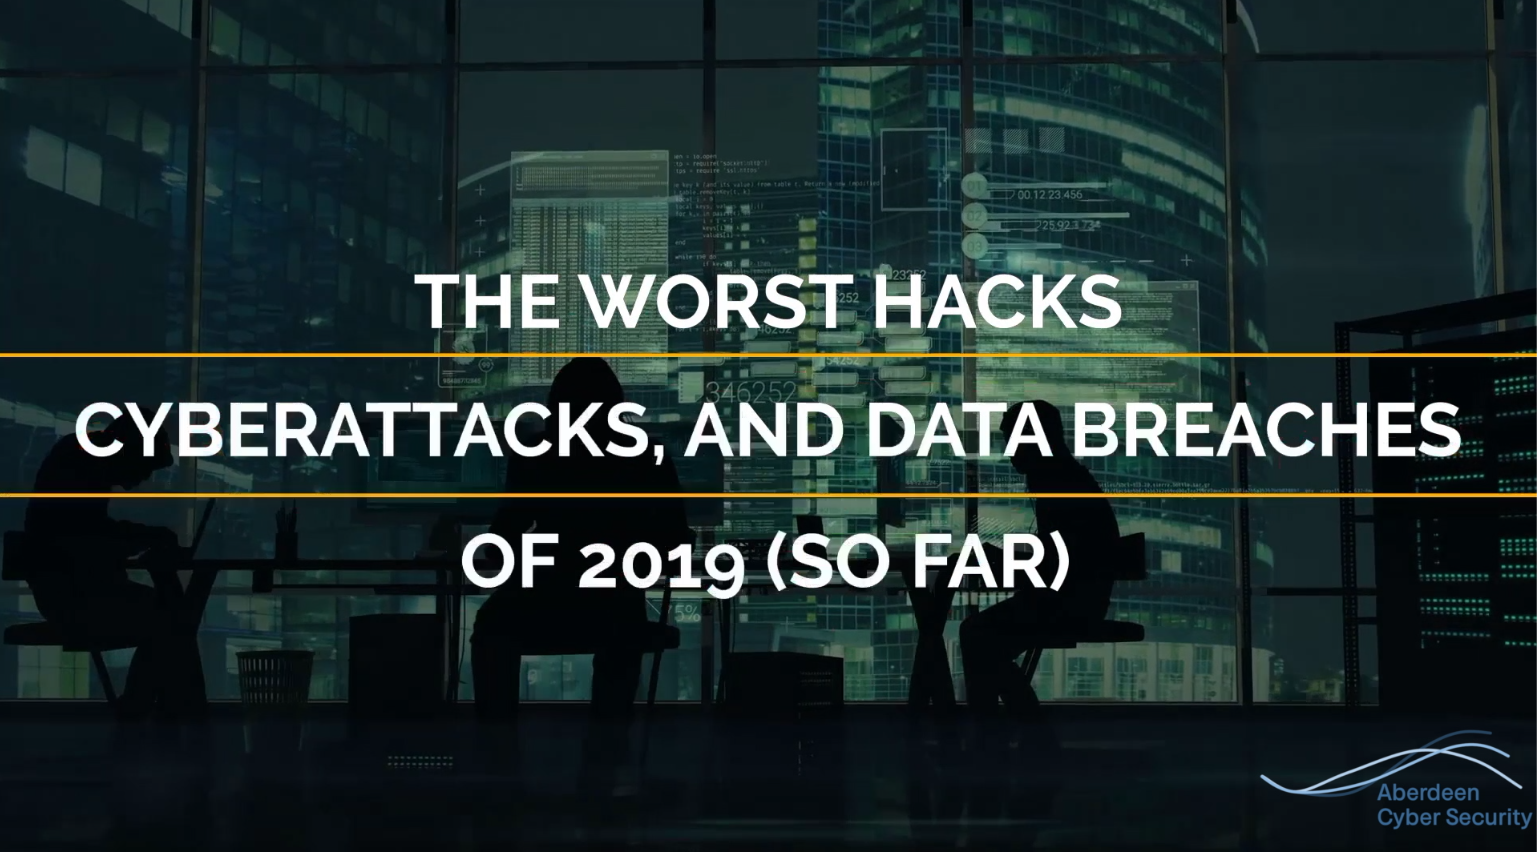 The Worst Hacks, Cyber-Attacks and Data Breaches Of 2019 (So far)